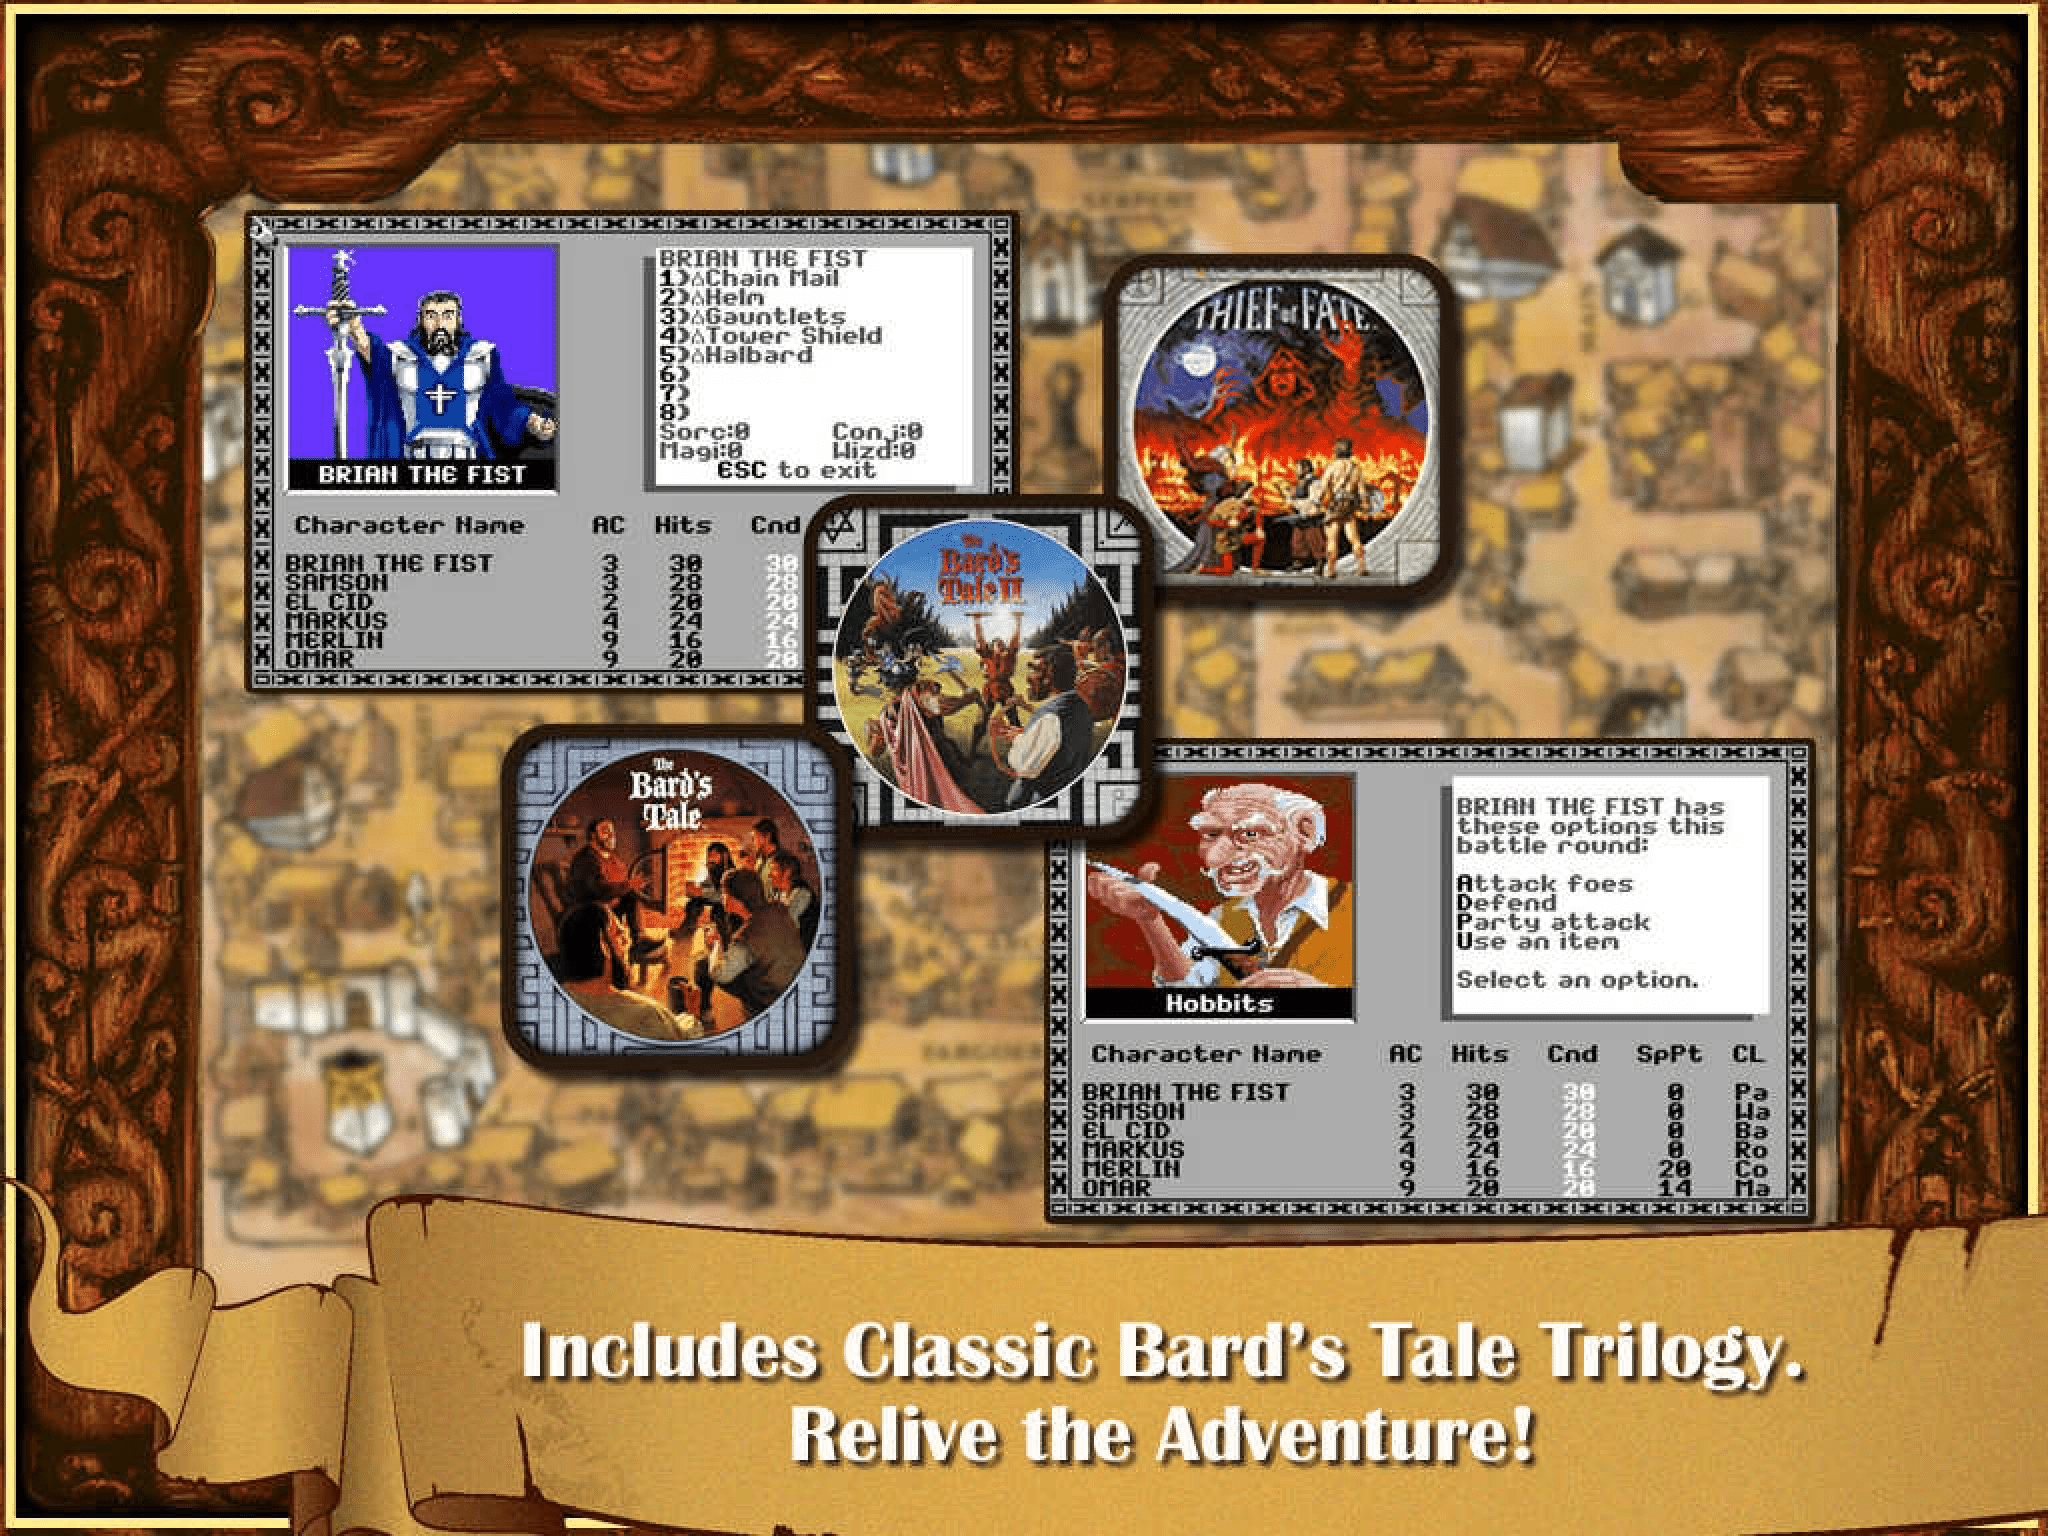 The Bard's Tale character descriptions from the game